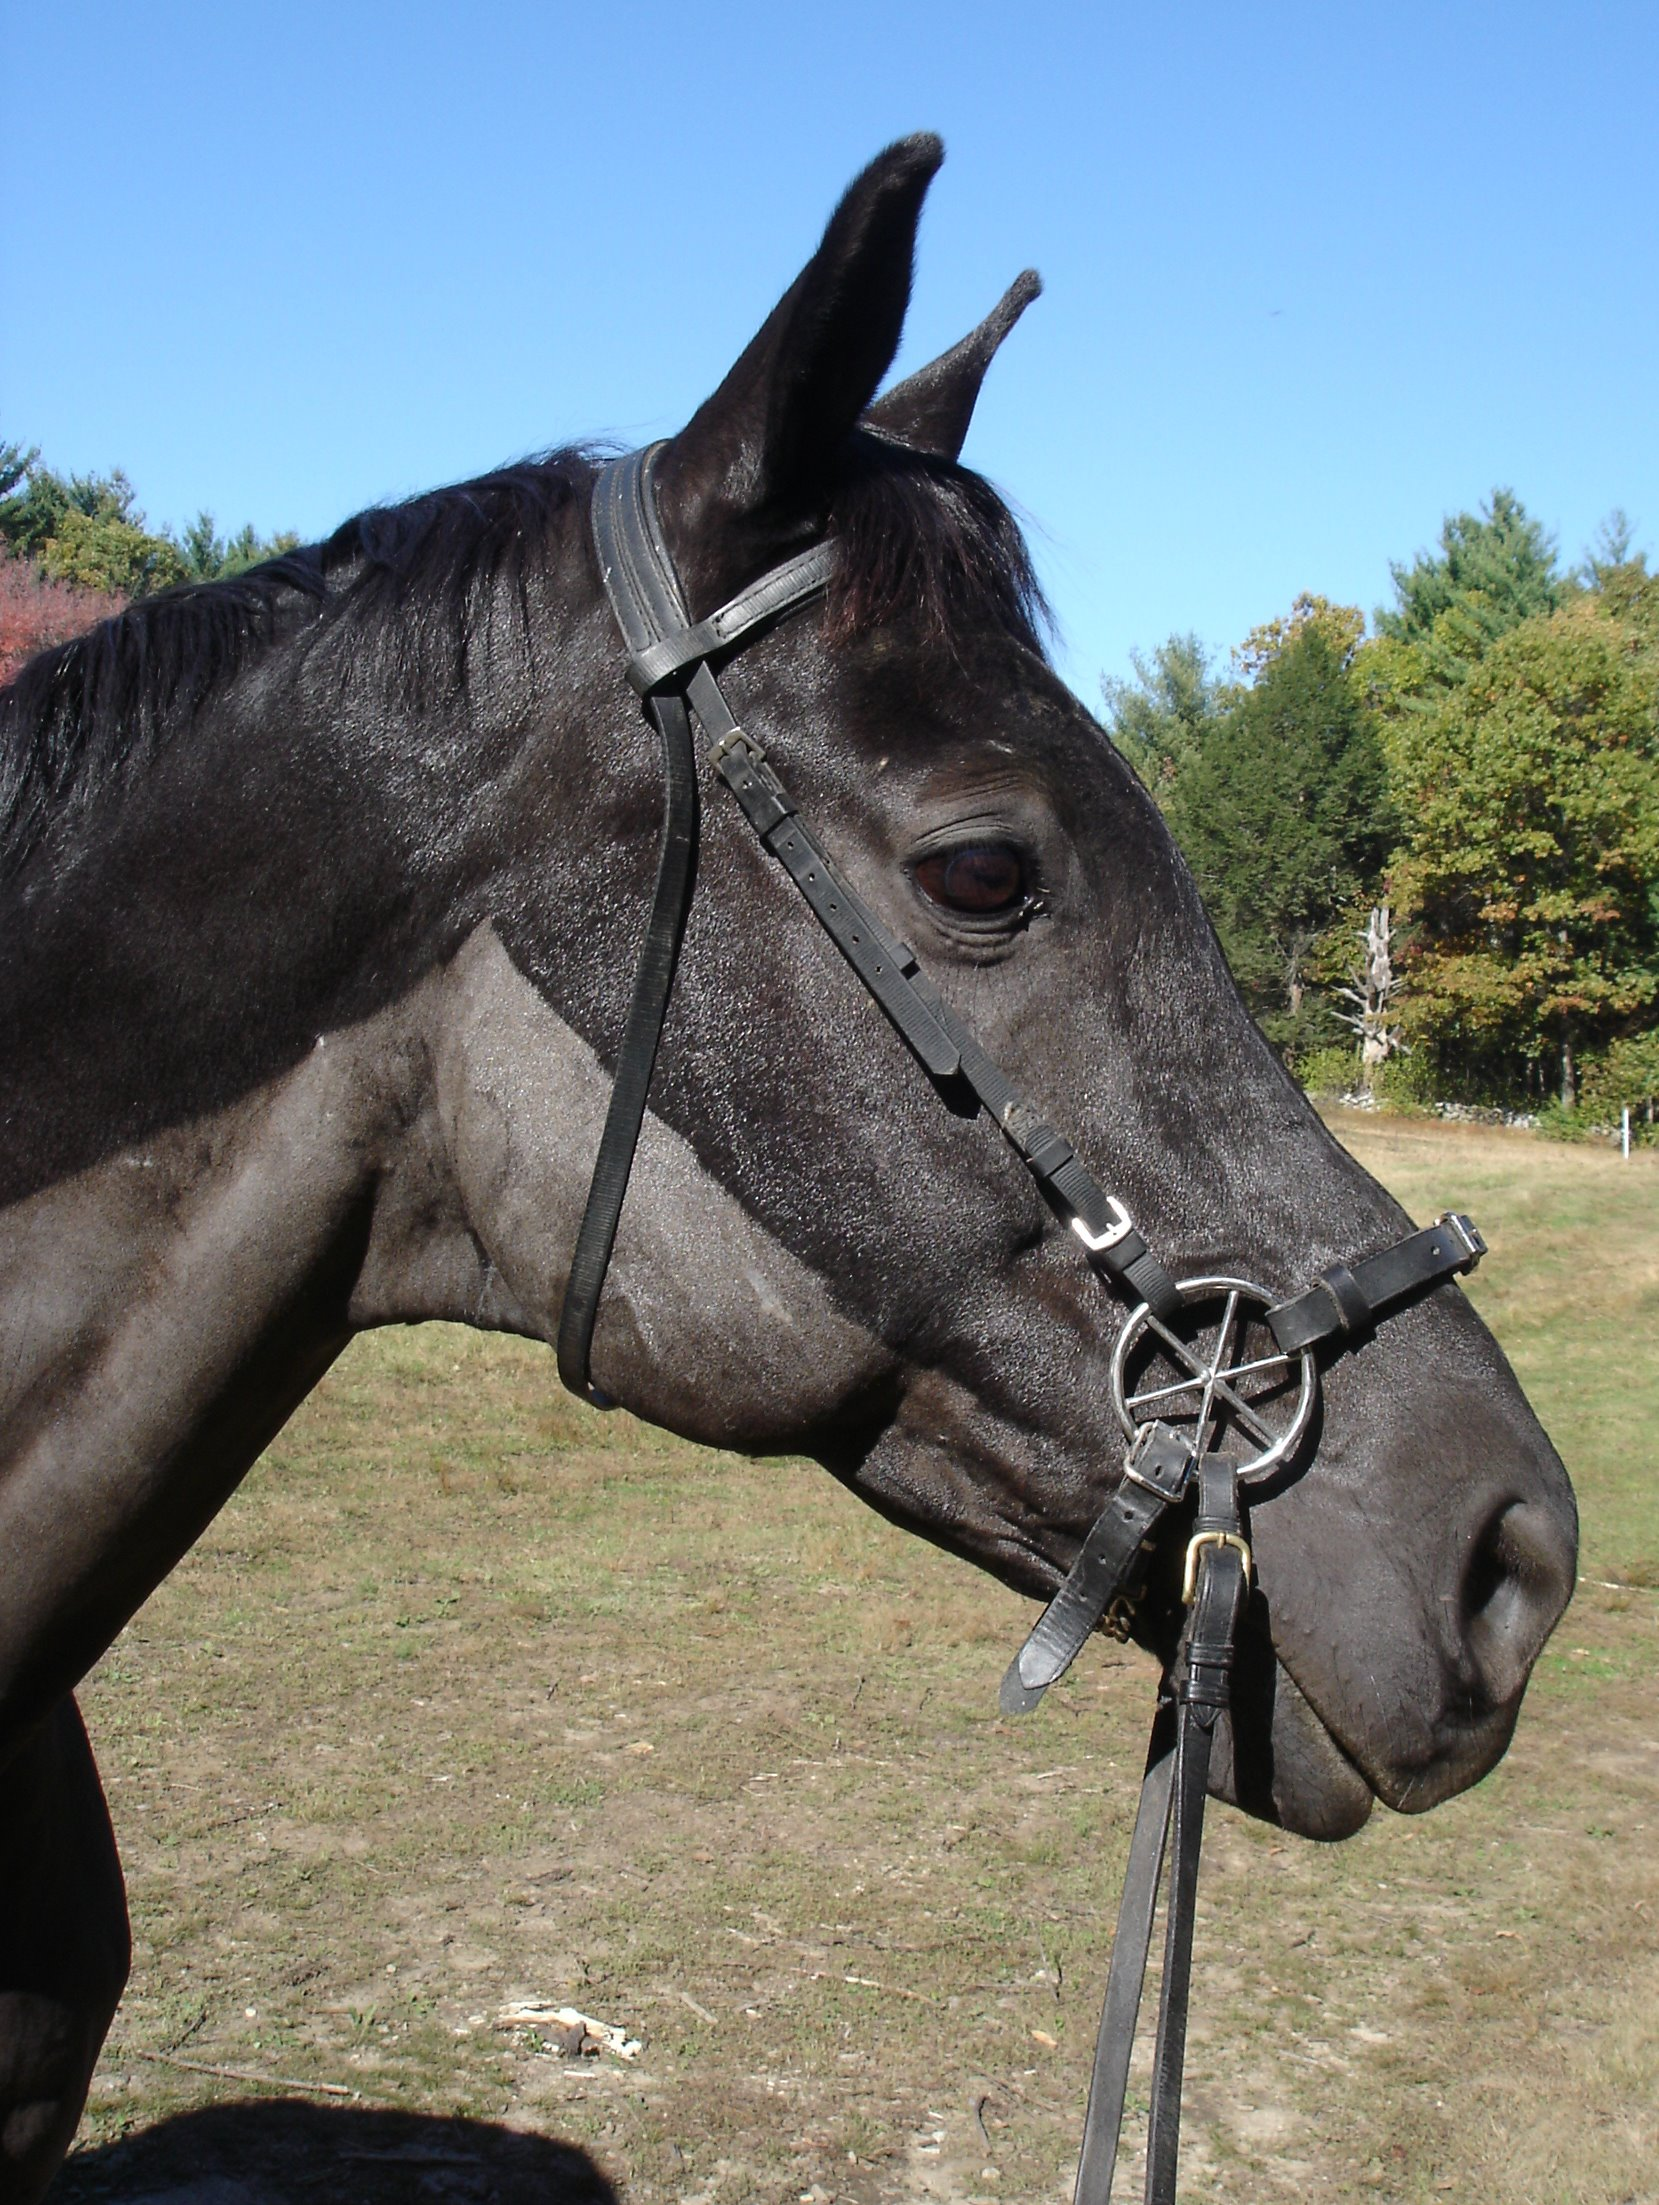 Bridle - Wikipedia